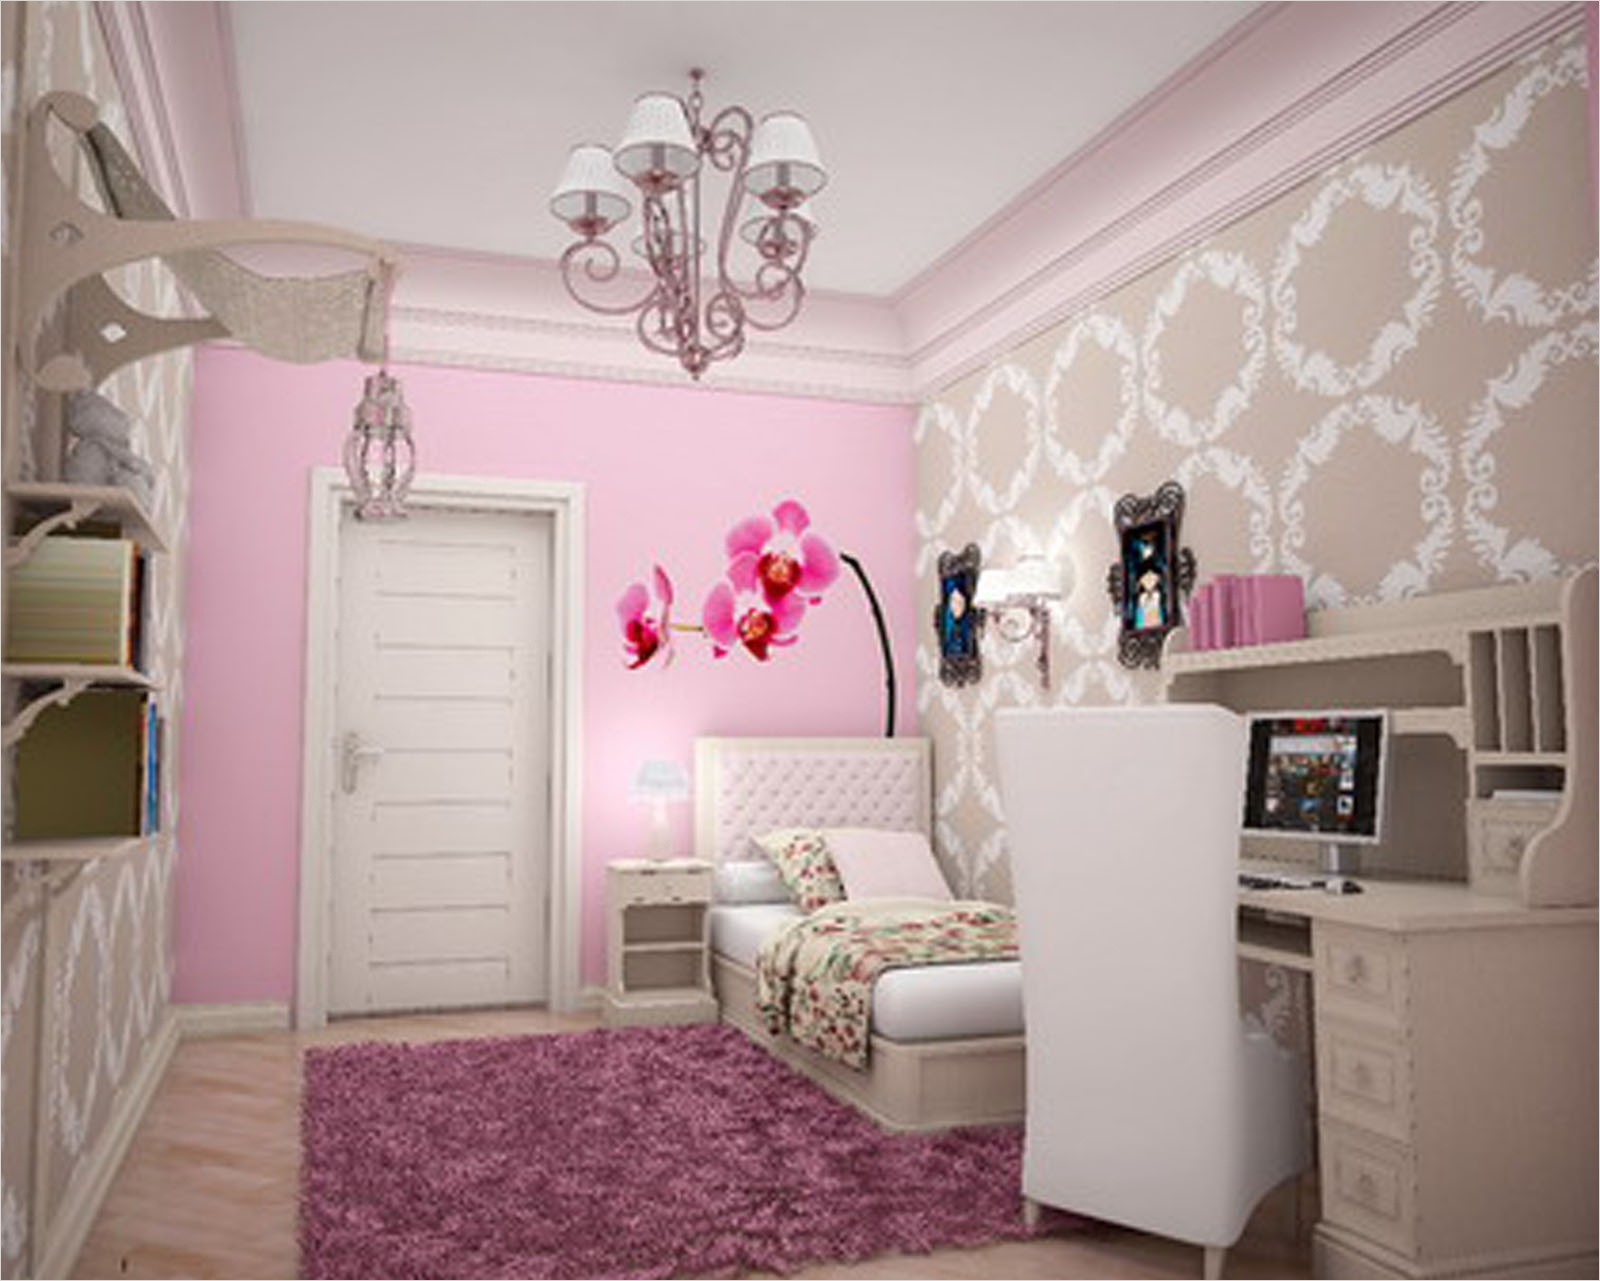 41 Amazing Dream Bedrooms for Teenage Girls 22 Dream Bedroom for Teenage Girls Tumblr Home Bo 5